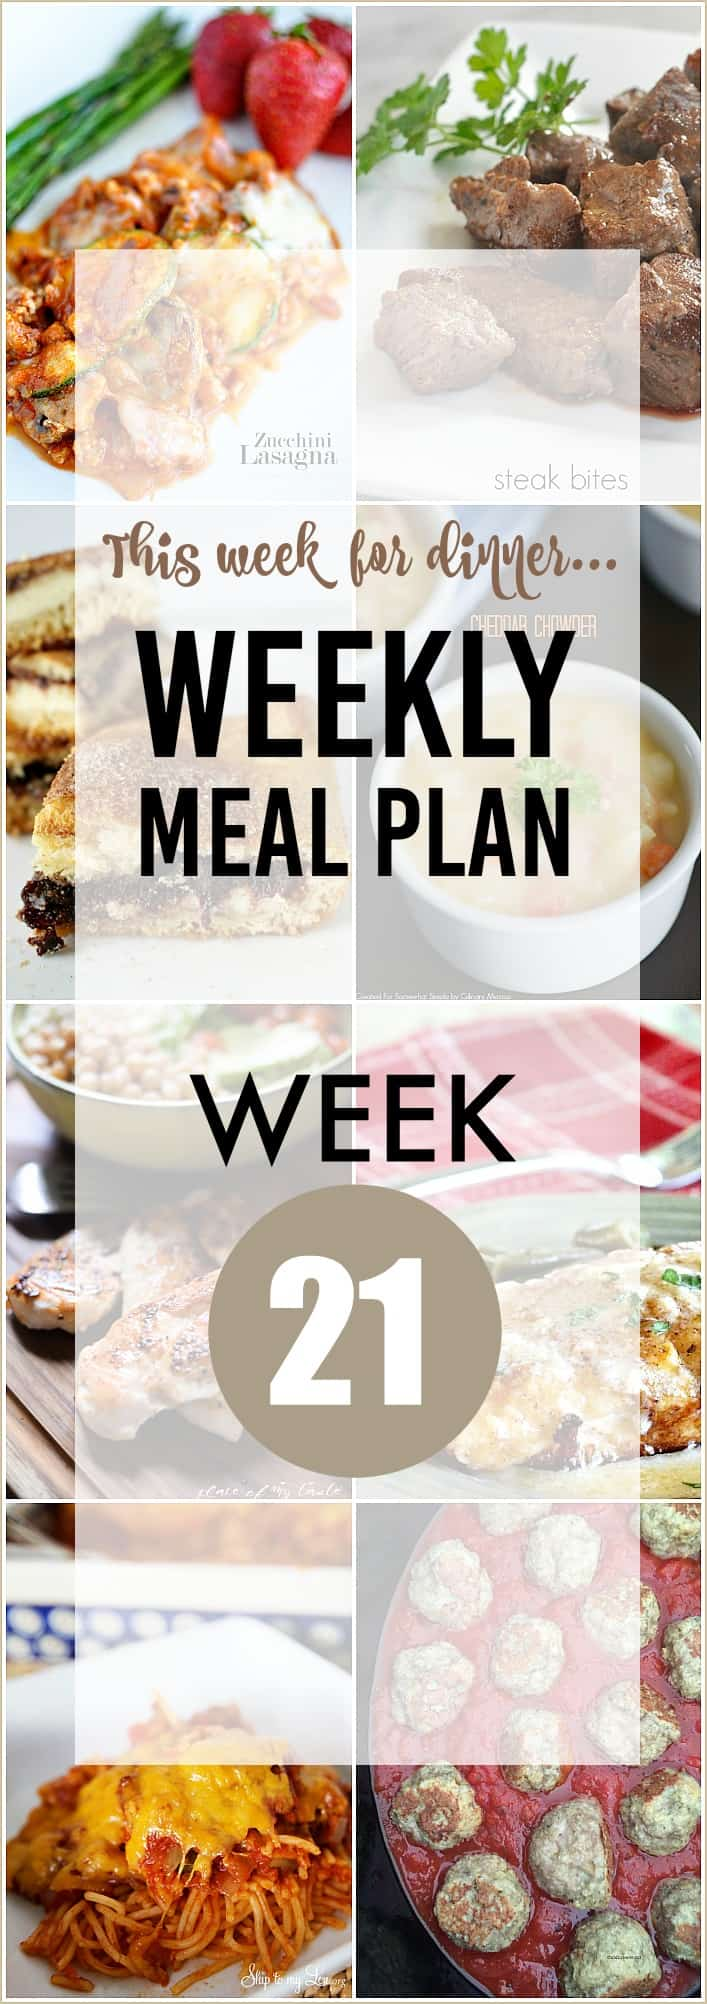 WEEKLY MEAL PLAN 21 the36thavenue